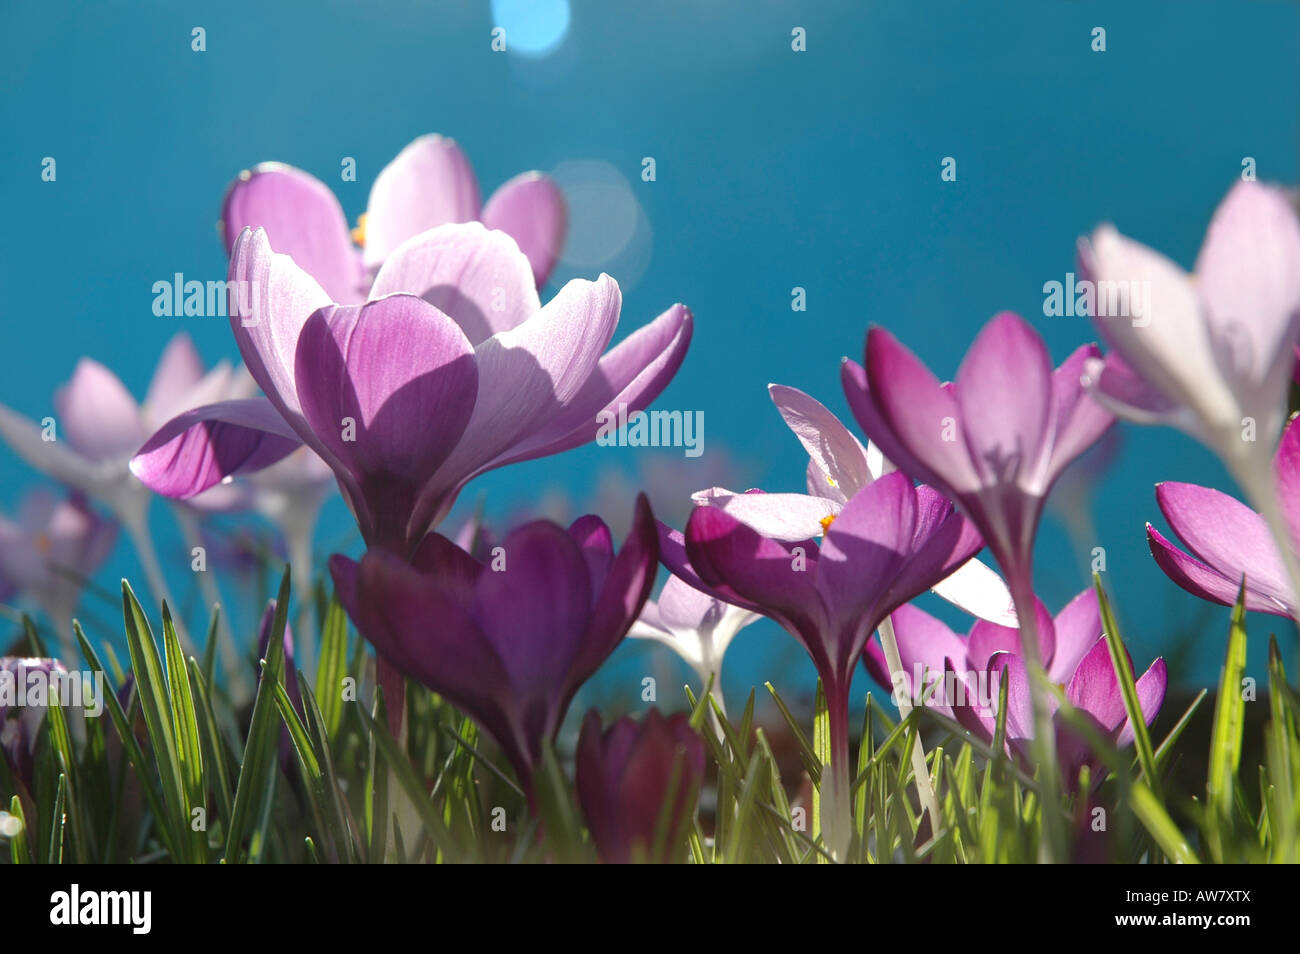 Delicate Crocus Flowers In Spring Stock Photo 16494985 Alamy